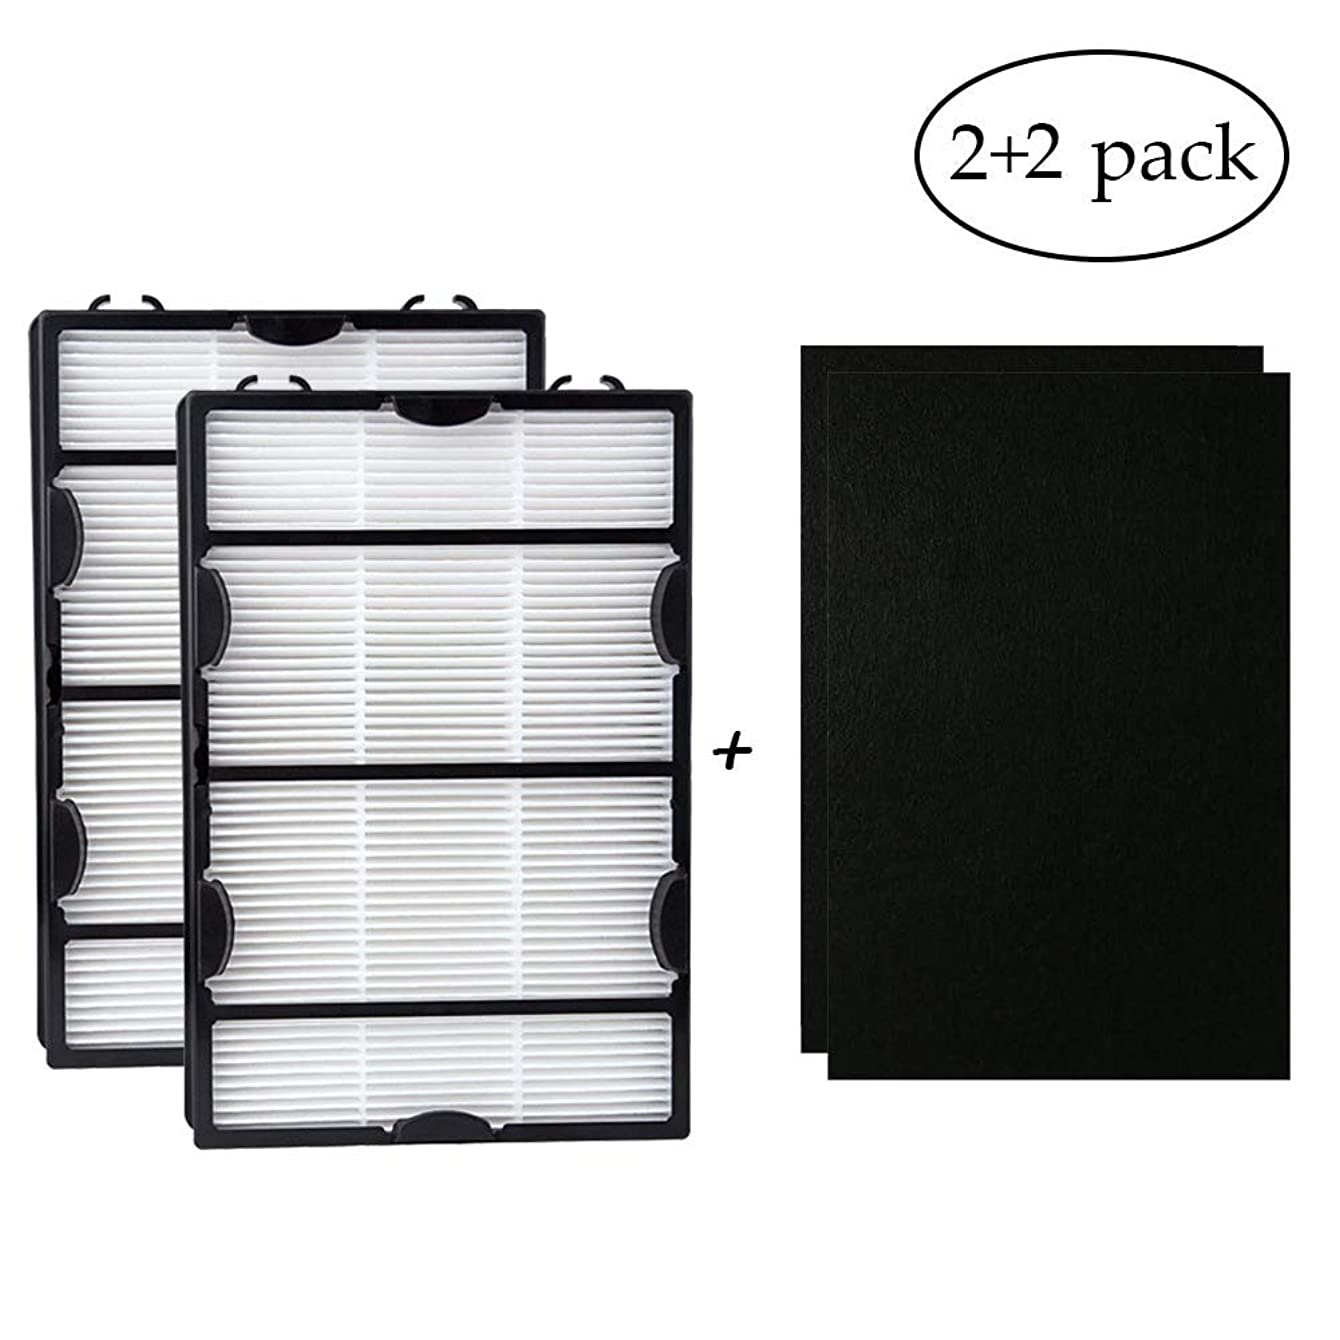 hothuimin 2Pack HAPF600DM-U2 True HEPA Filter with Enhanced Mold Fighting Power #KQLW?